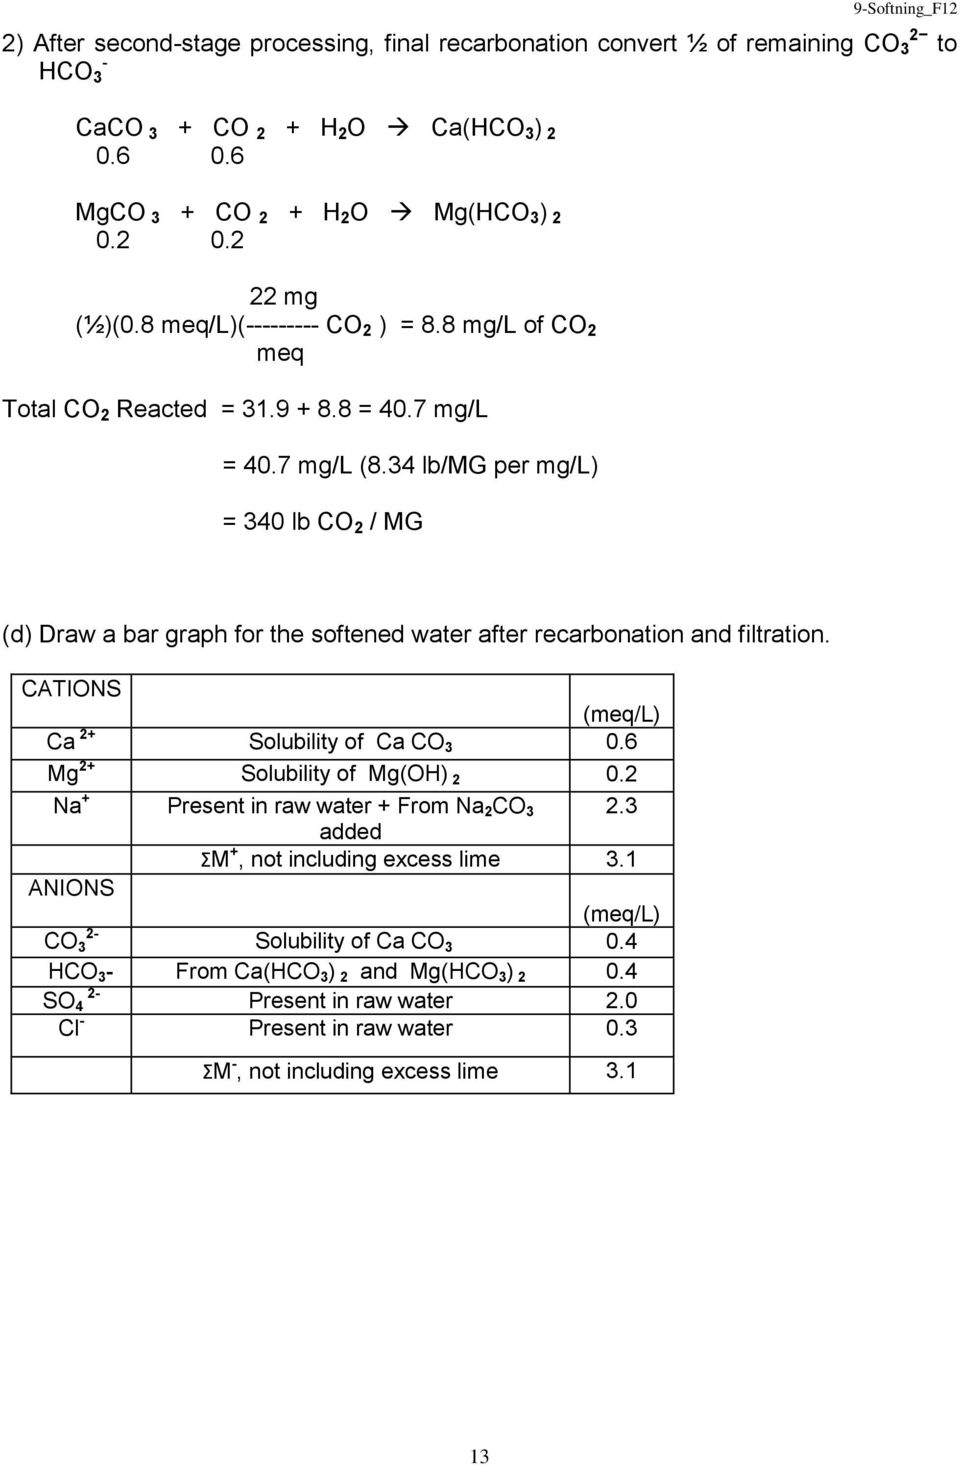 34 lb/mg per mg/l) = 340 lb CO 2 / MG (d) Draw a bar graph for the softened water after recarbonation and filtration. CATIONS (meq/l) Ca 2+ Solubility of Ca CO 3 0.6 Mg 2+ Solubility of Mg(OH) 2 0.